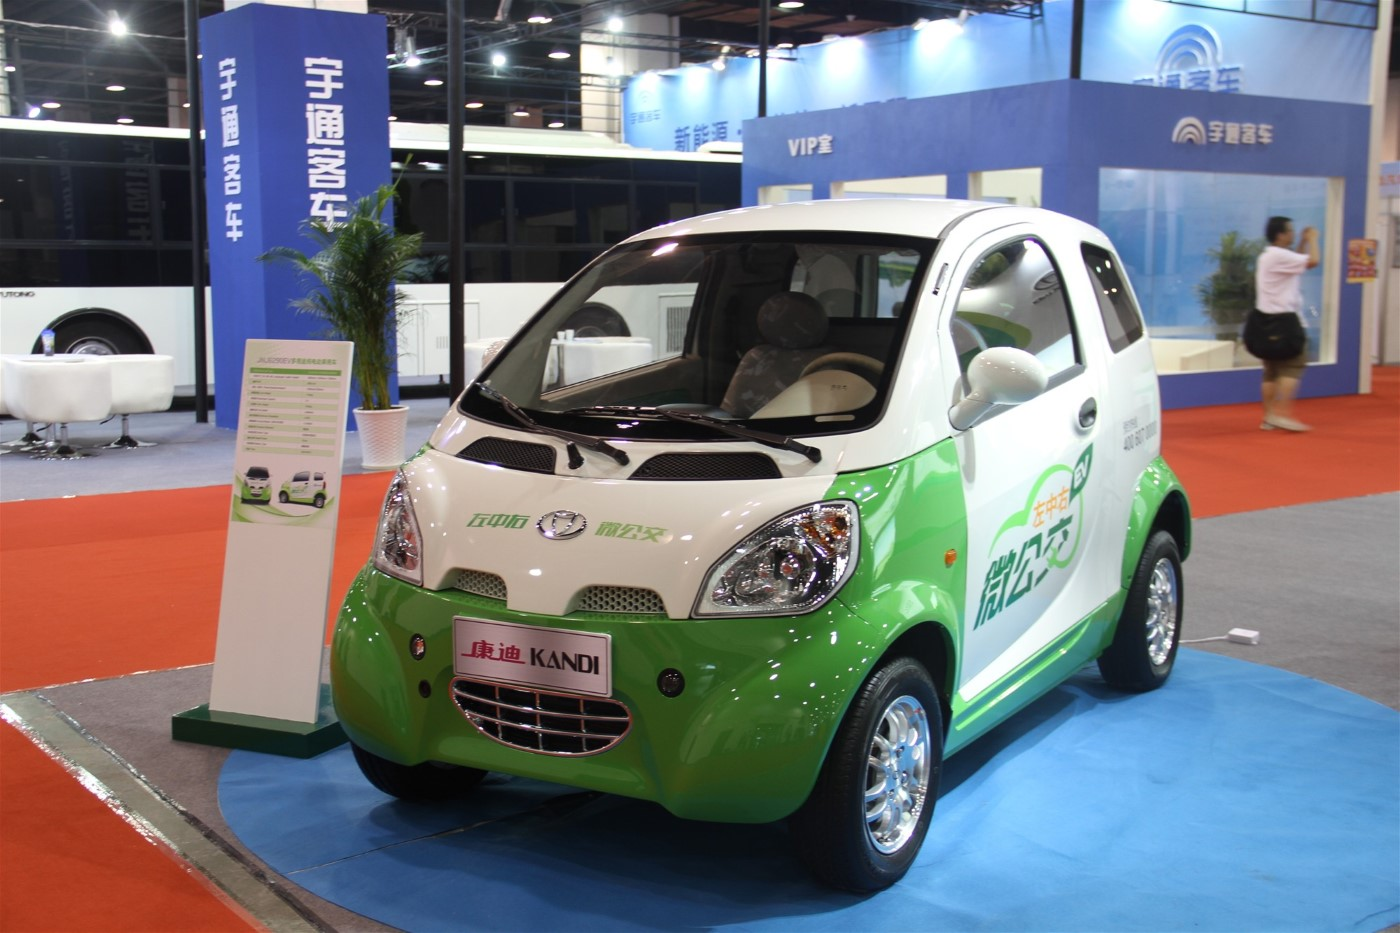 Kandi Chinese Electric Car Sharing Service Expands To Larger Cities